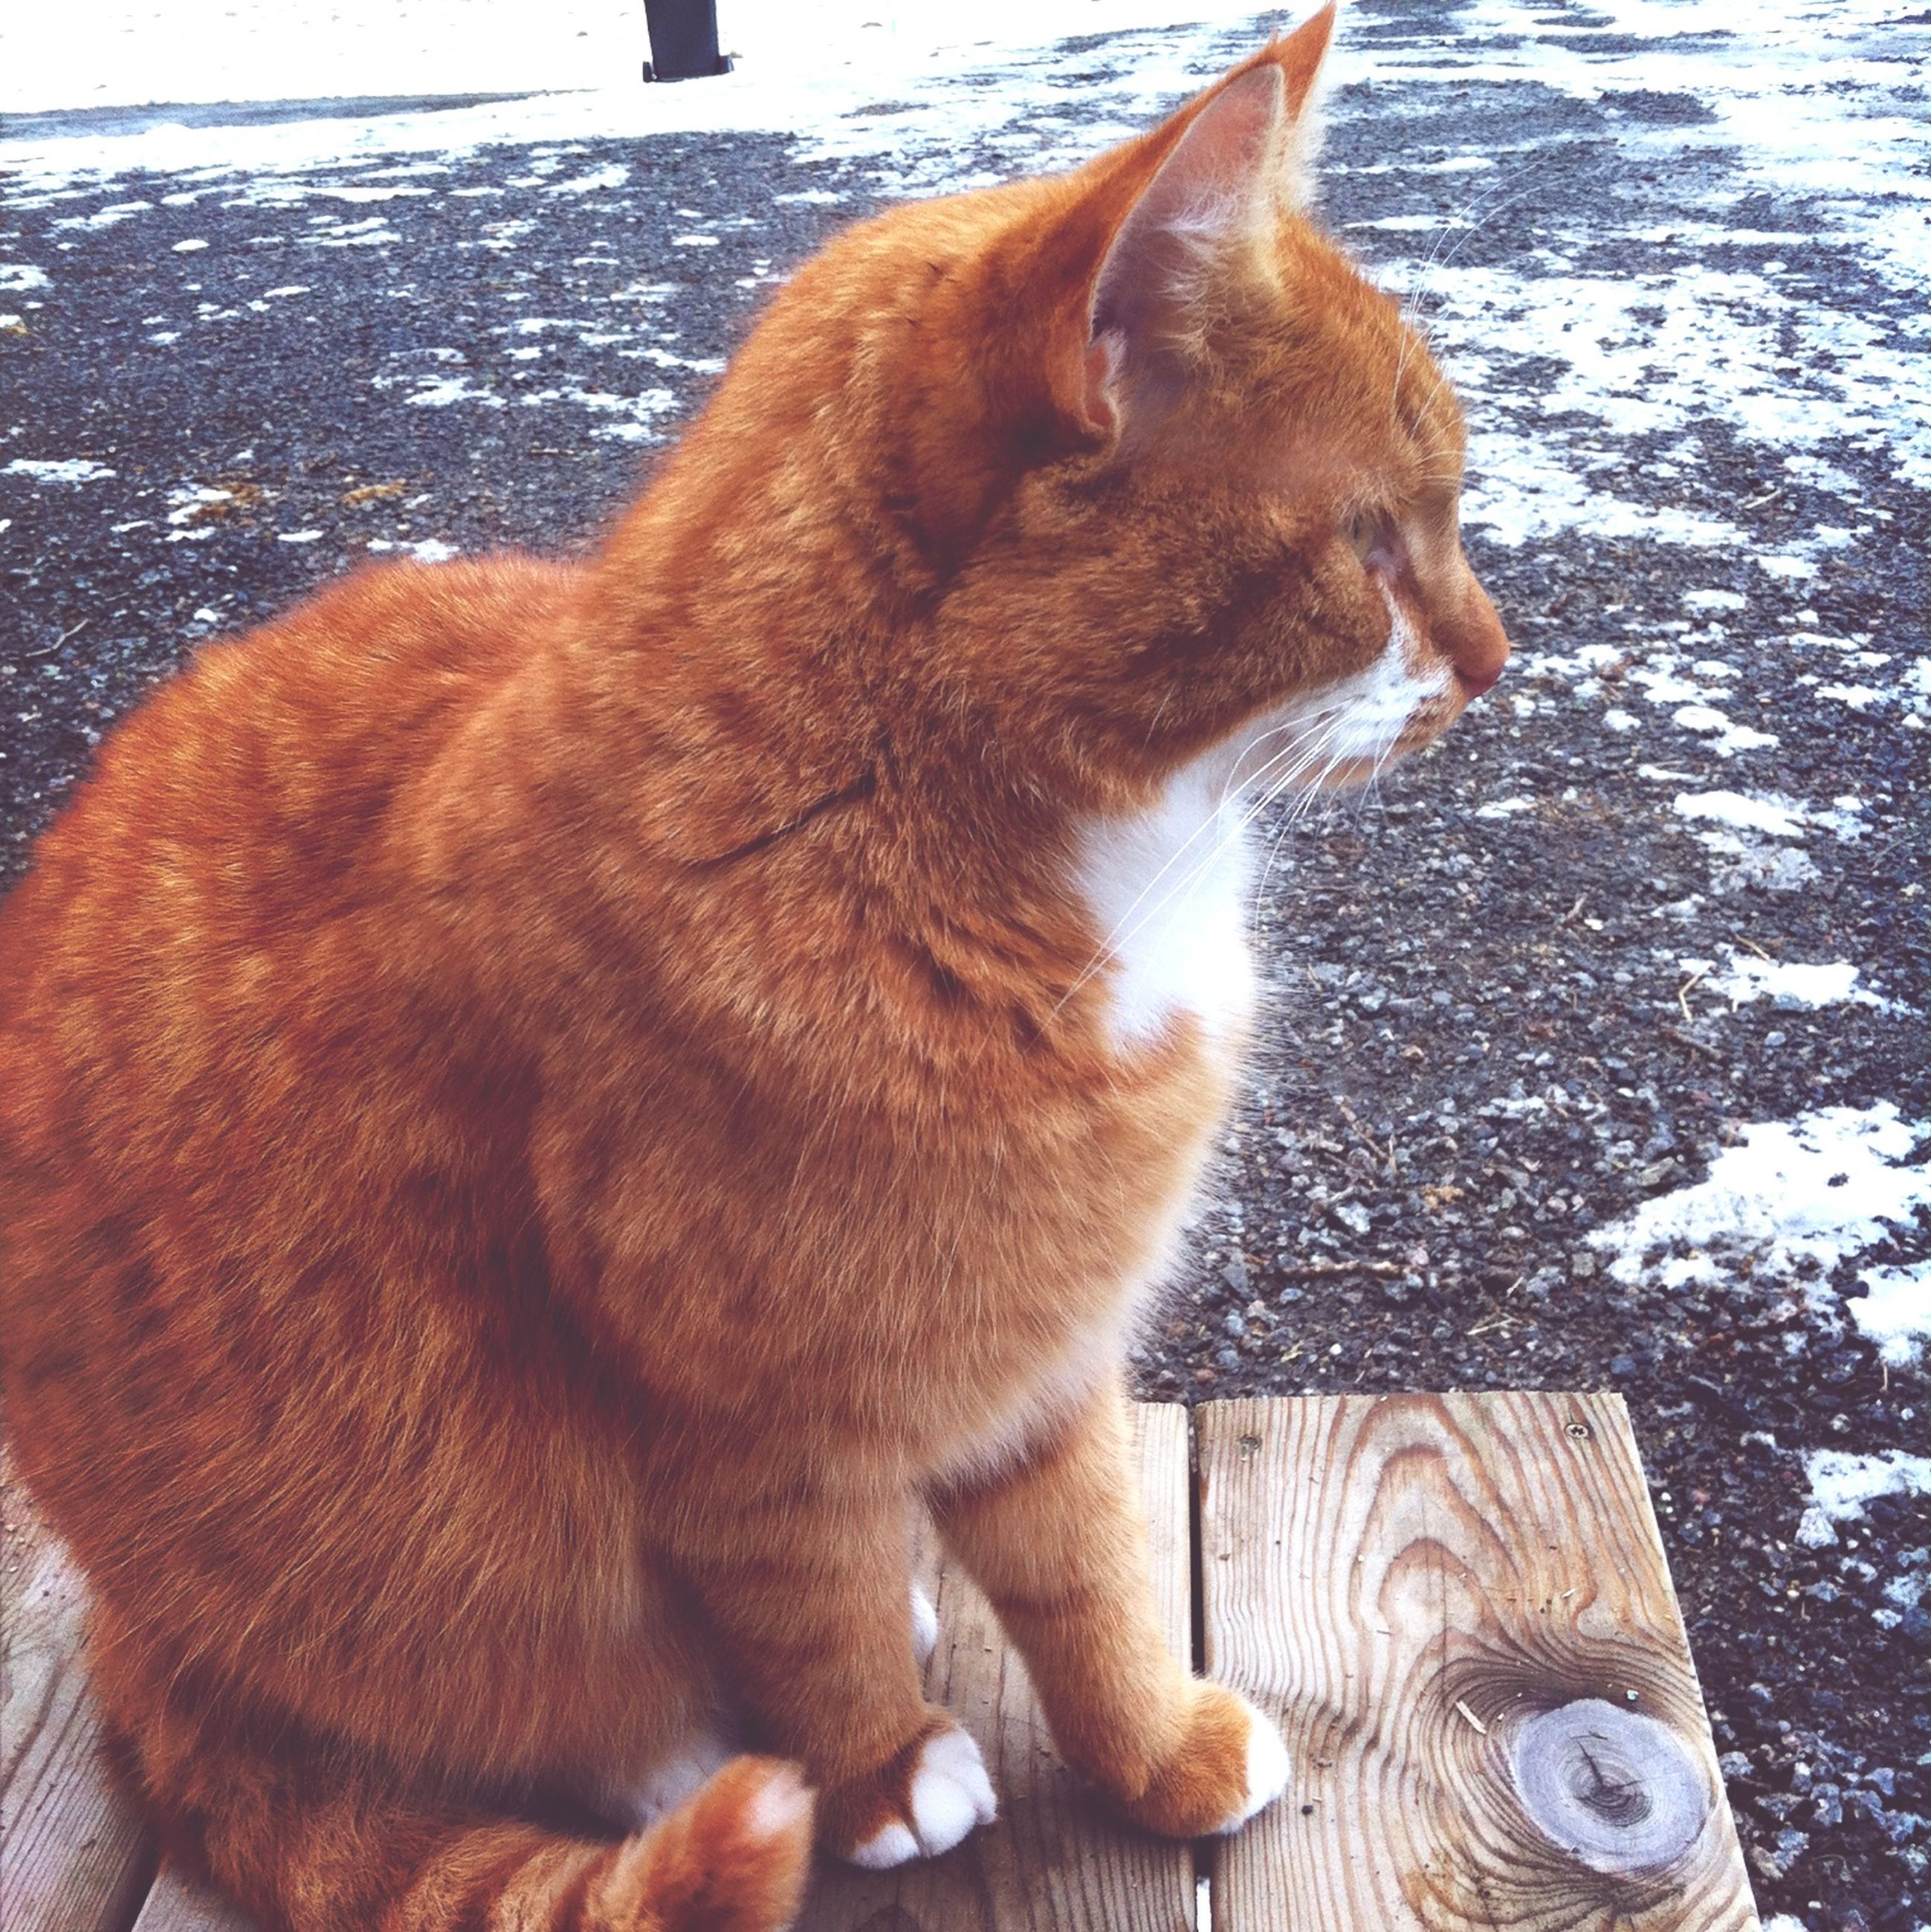 domestic cat, animal themes, mammal, domestic animals, cat, one animal, pets, feline, whisker, brown, relaxation, sitting, looking away, no people, carnivora, close-up, day, outdoors, side view, orange color